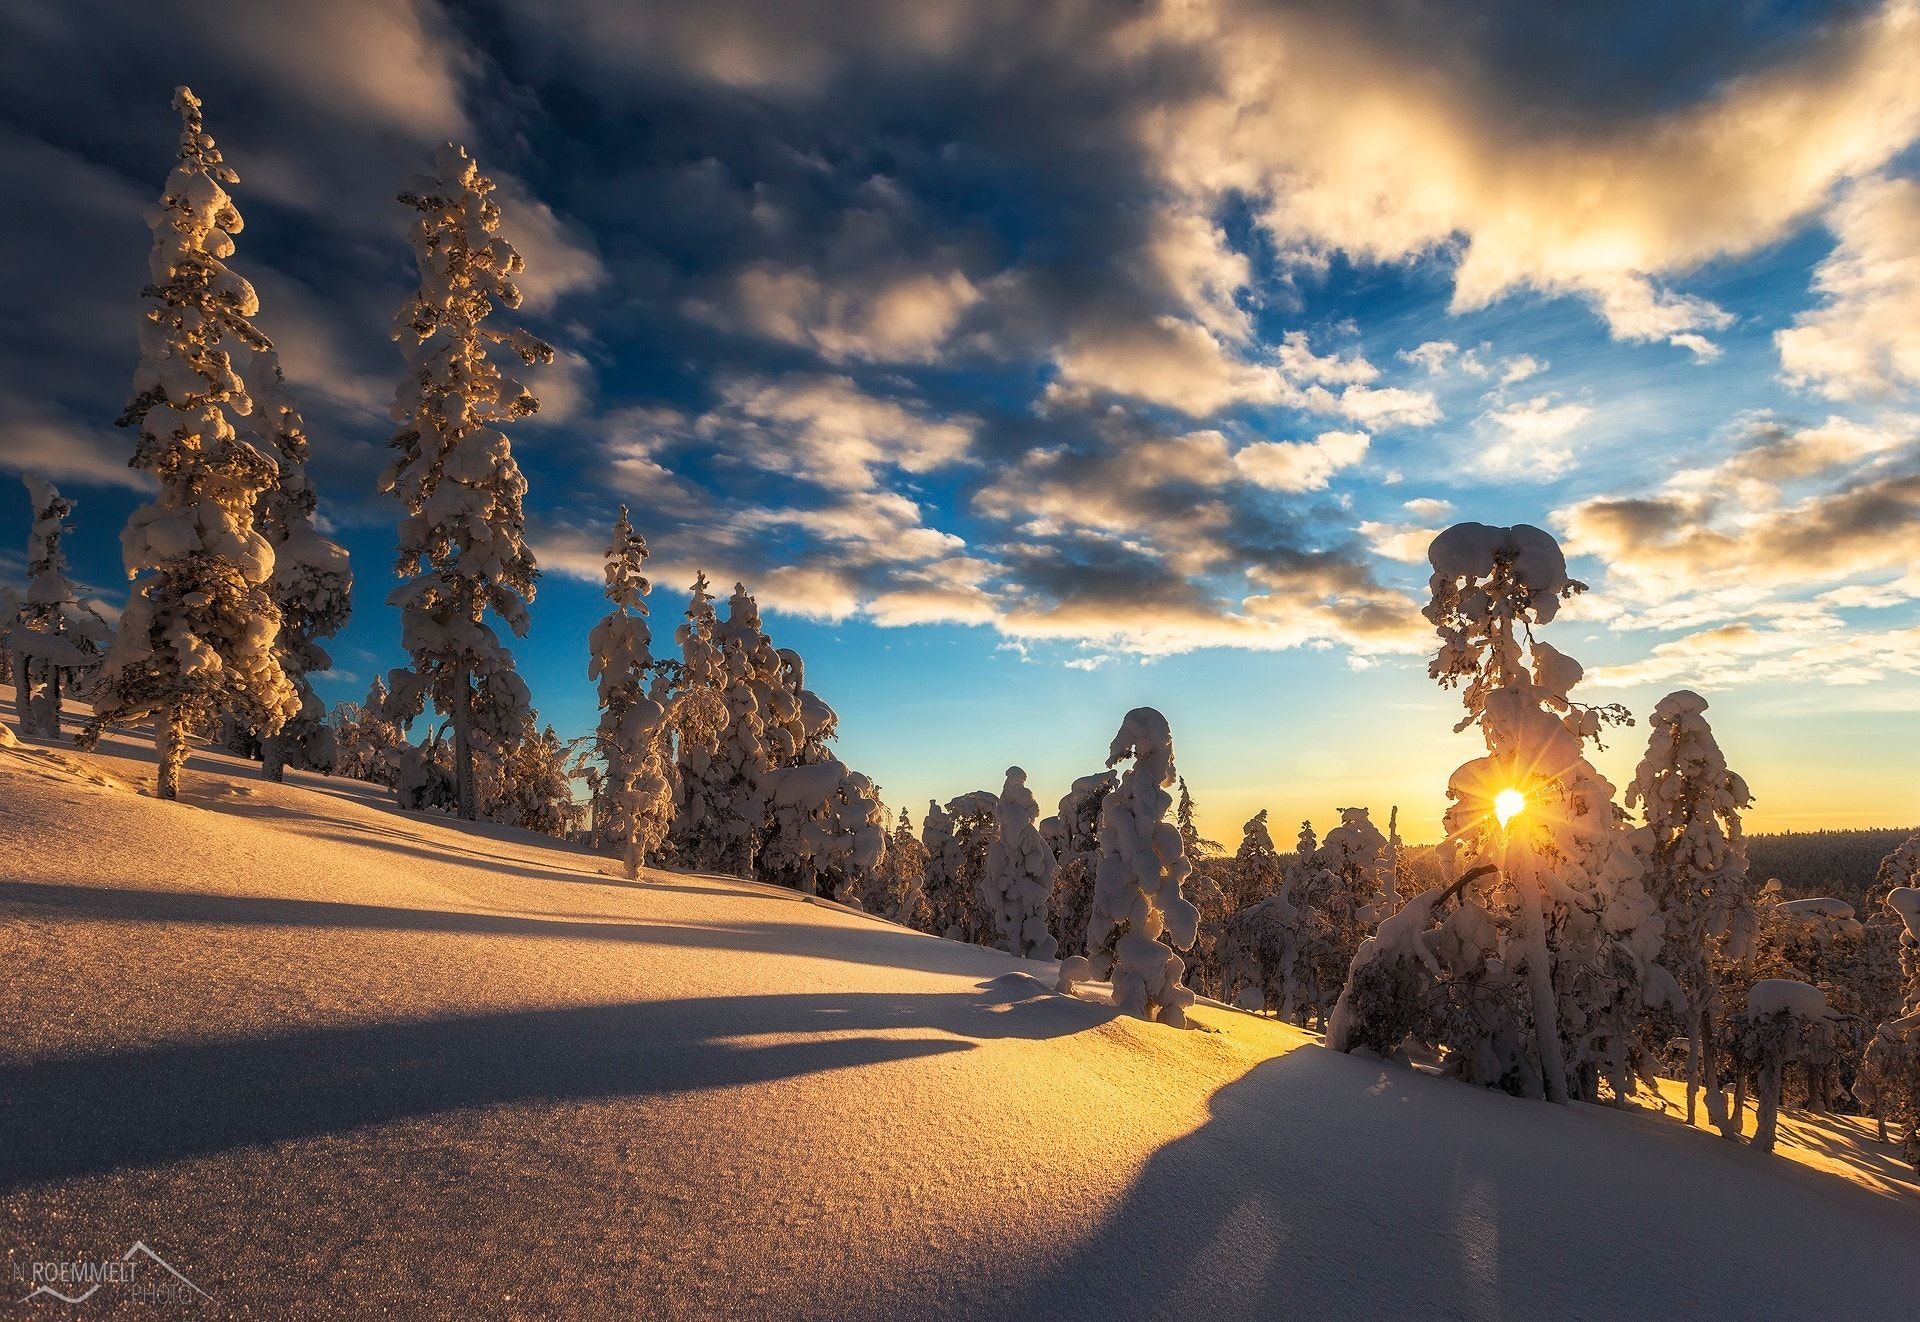 Golden light - Sunnset in Finland during Winter